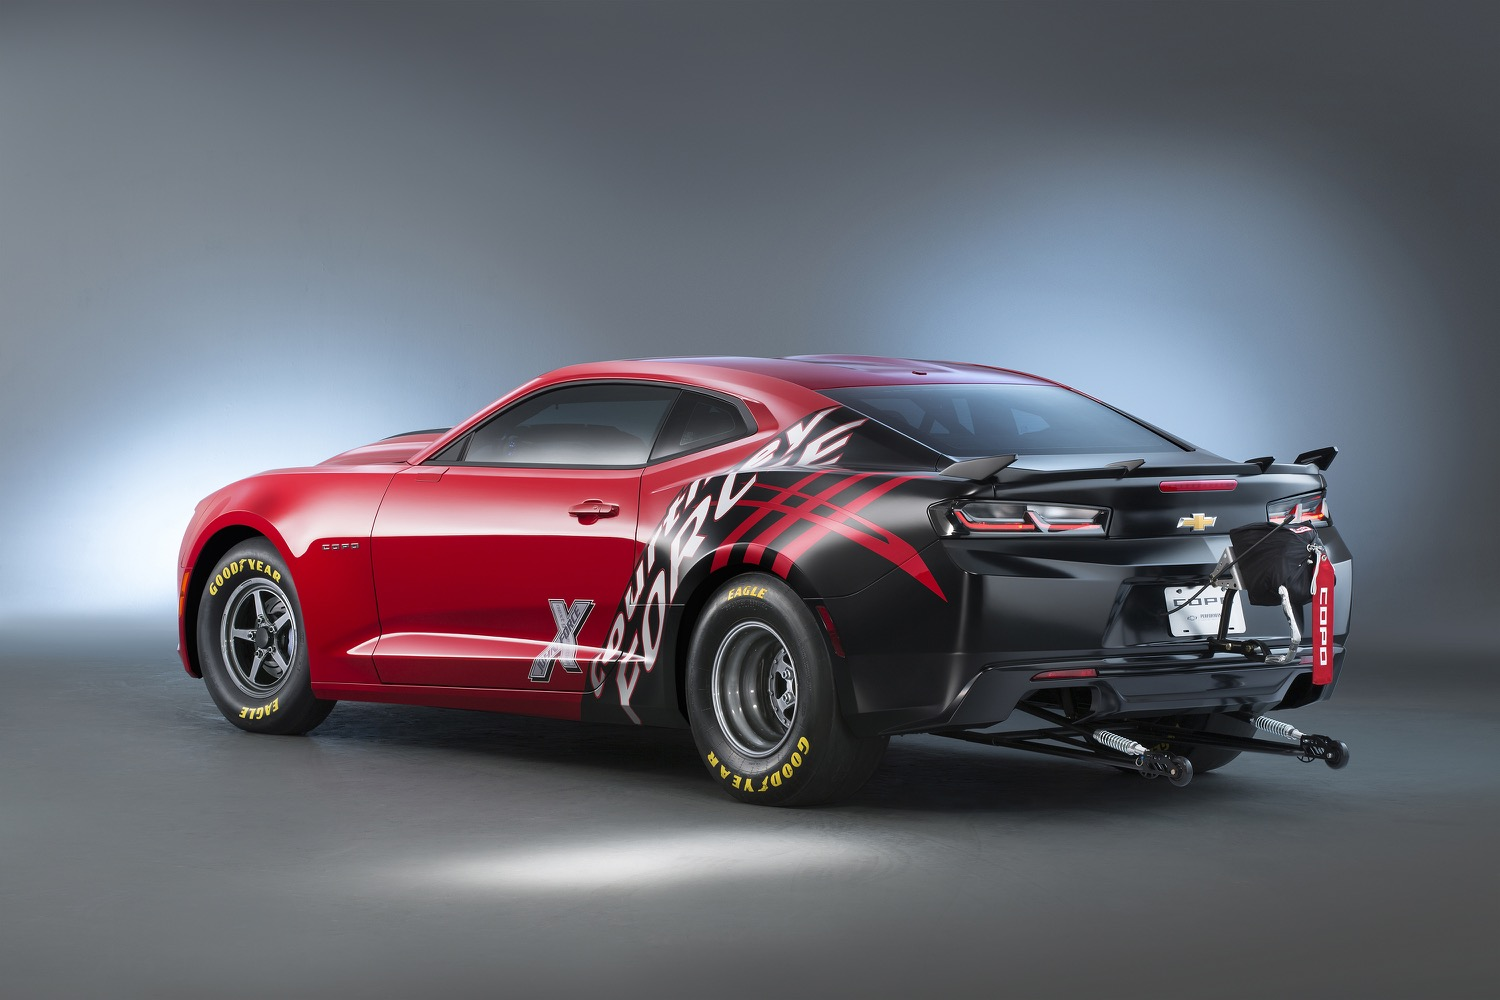 2015 Chevrolet Camaro COPO photo - 2